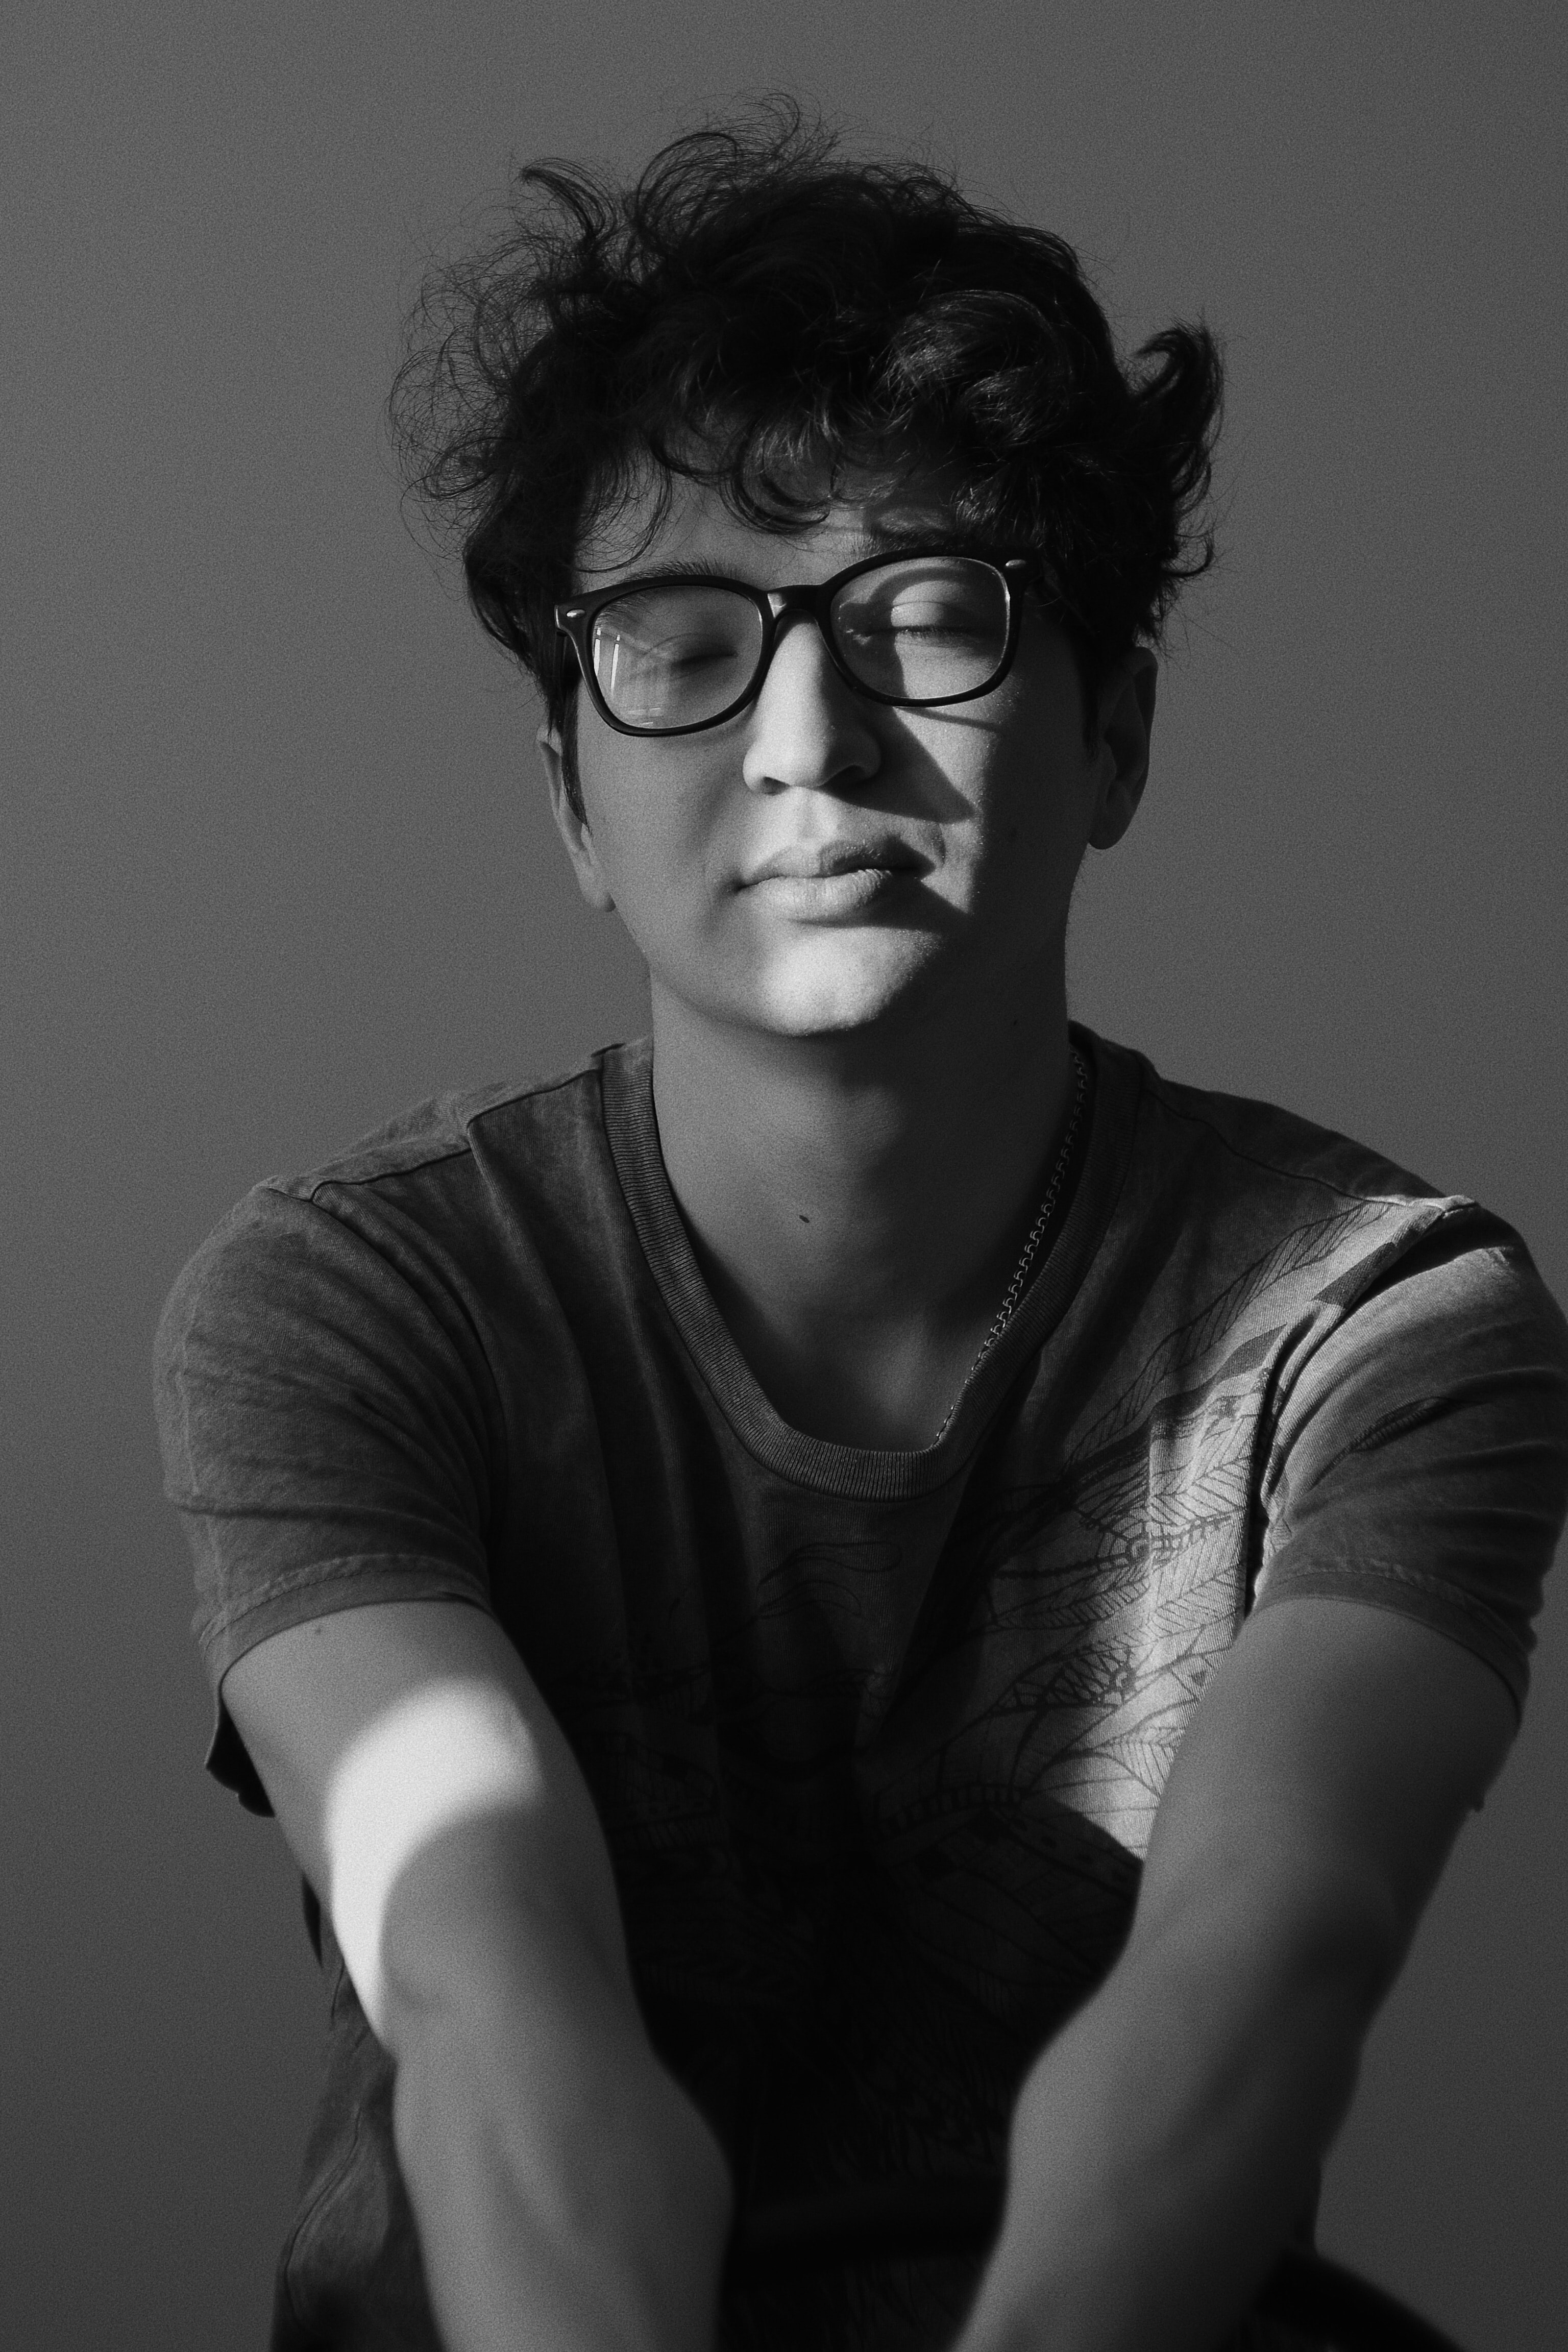 grayscale photography of man wearing crew-neck t-shirt and eyeglasses